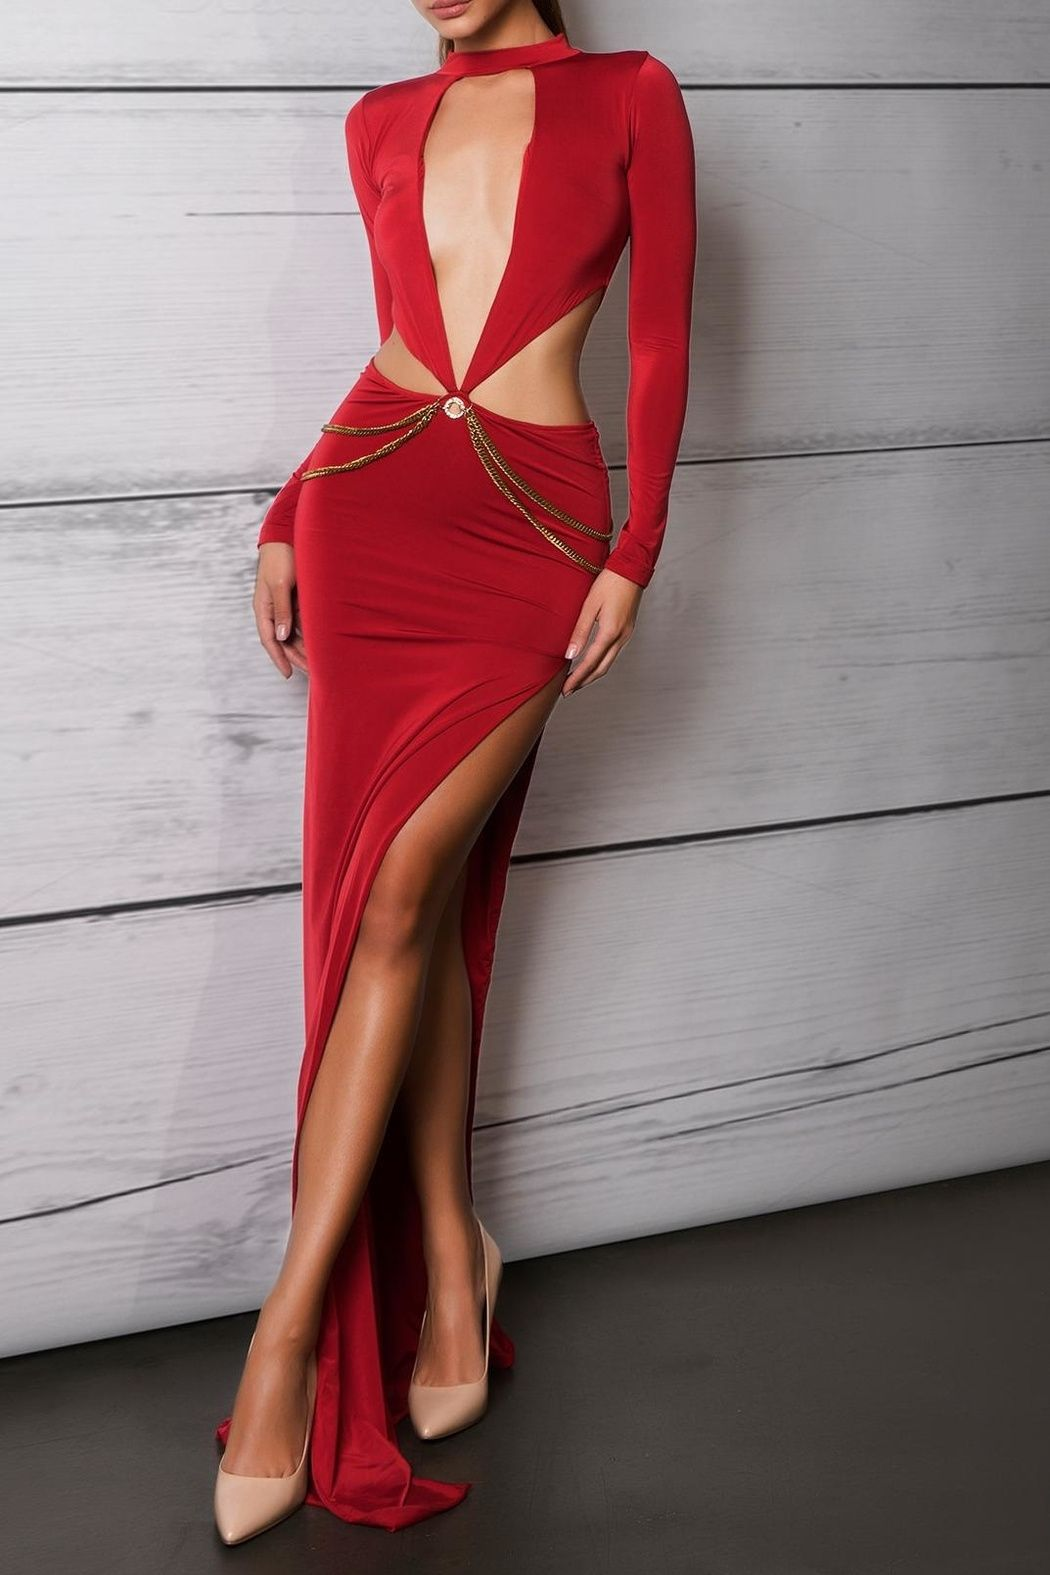 Savee couture red cut out dress red maxi dresses red maxi and choker